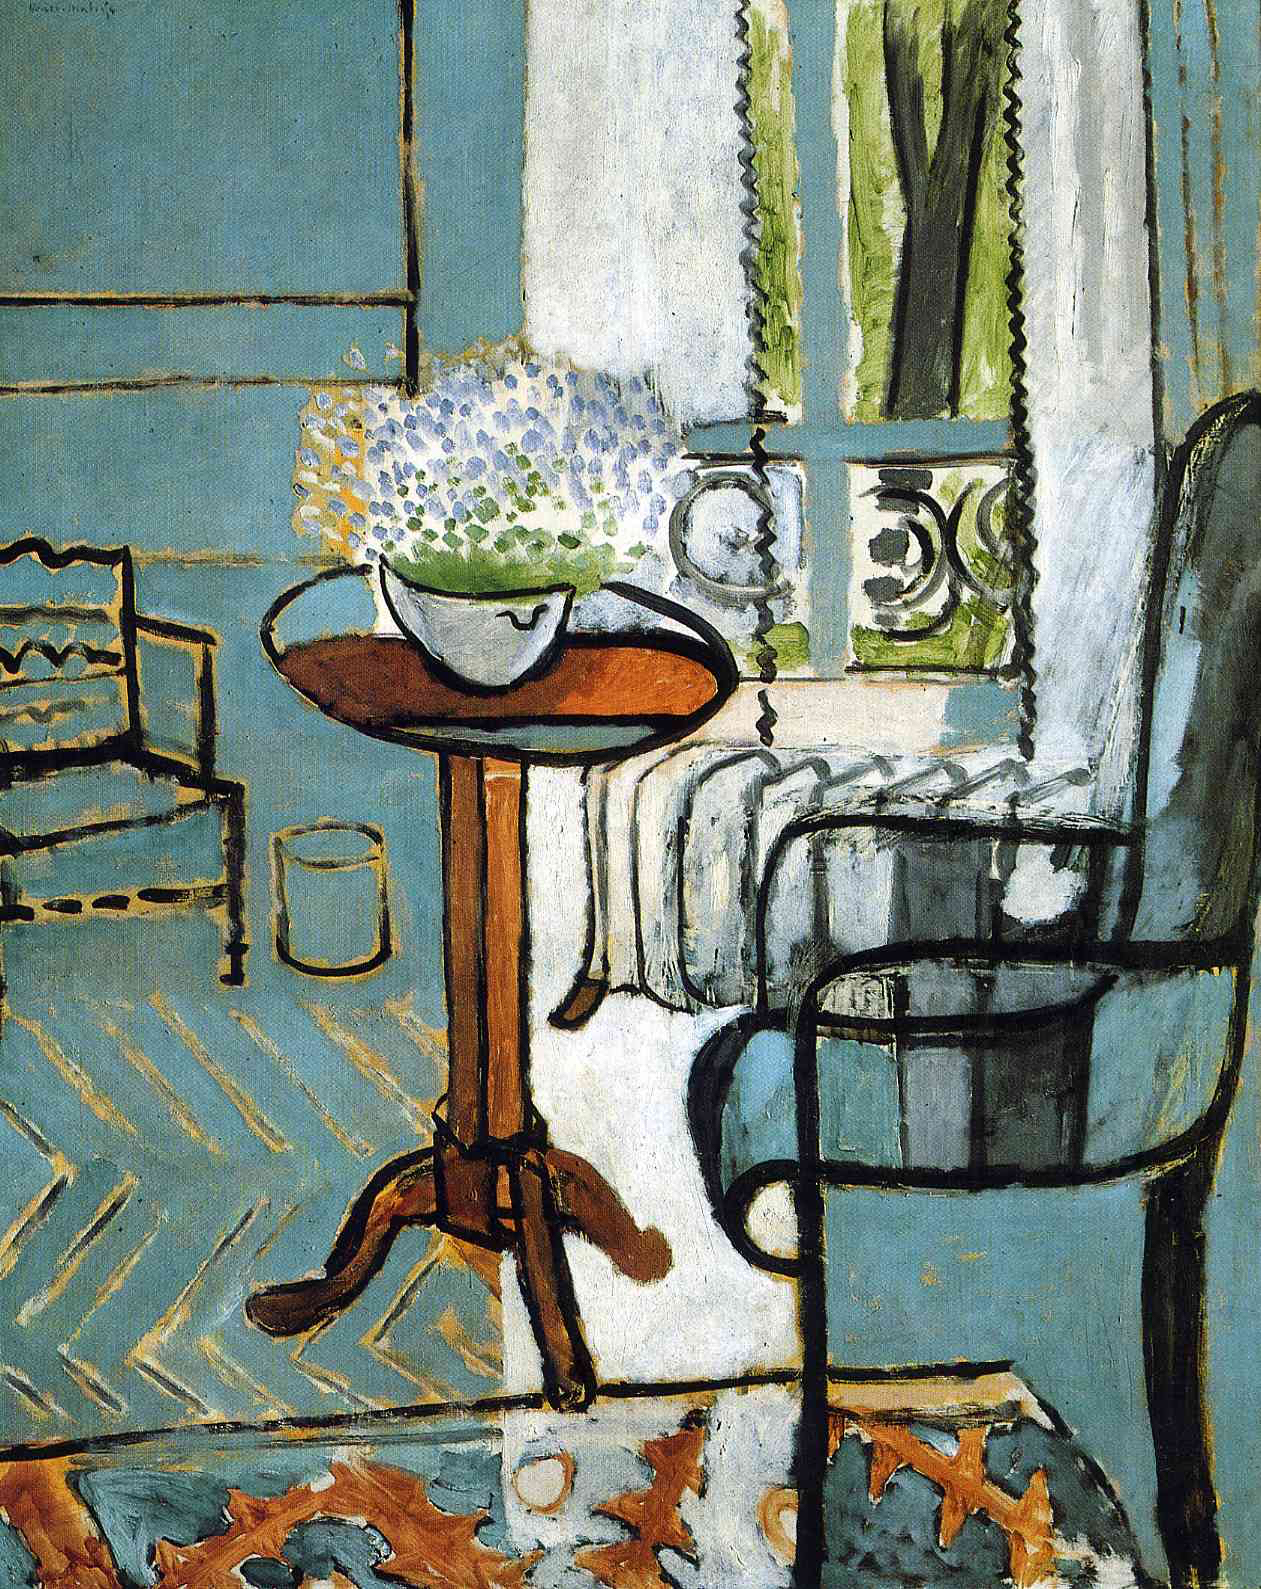 epph matisse s the window 1916